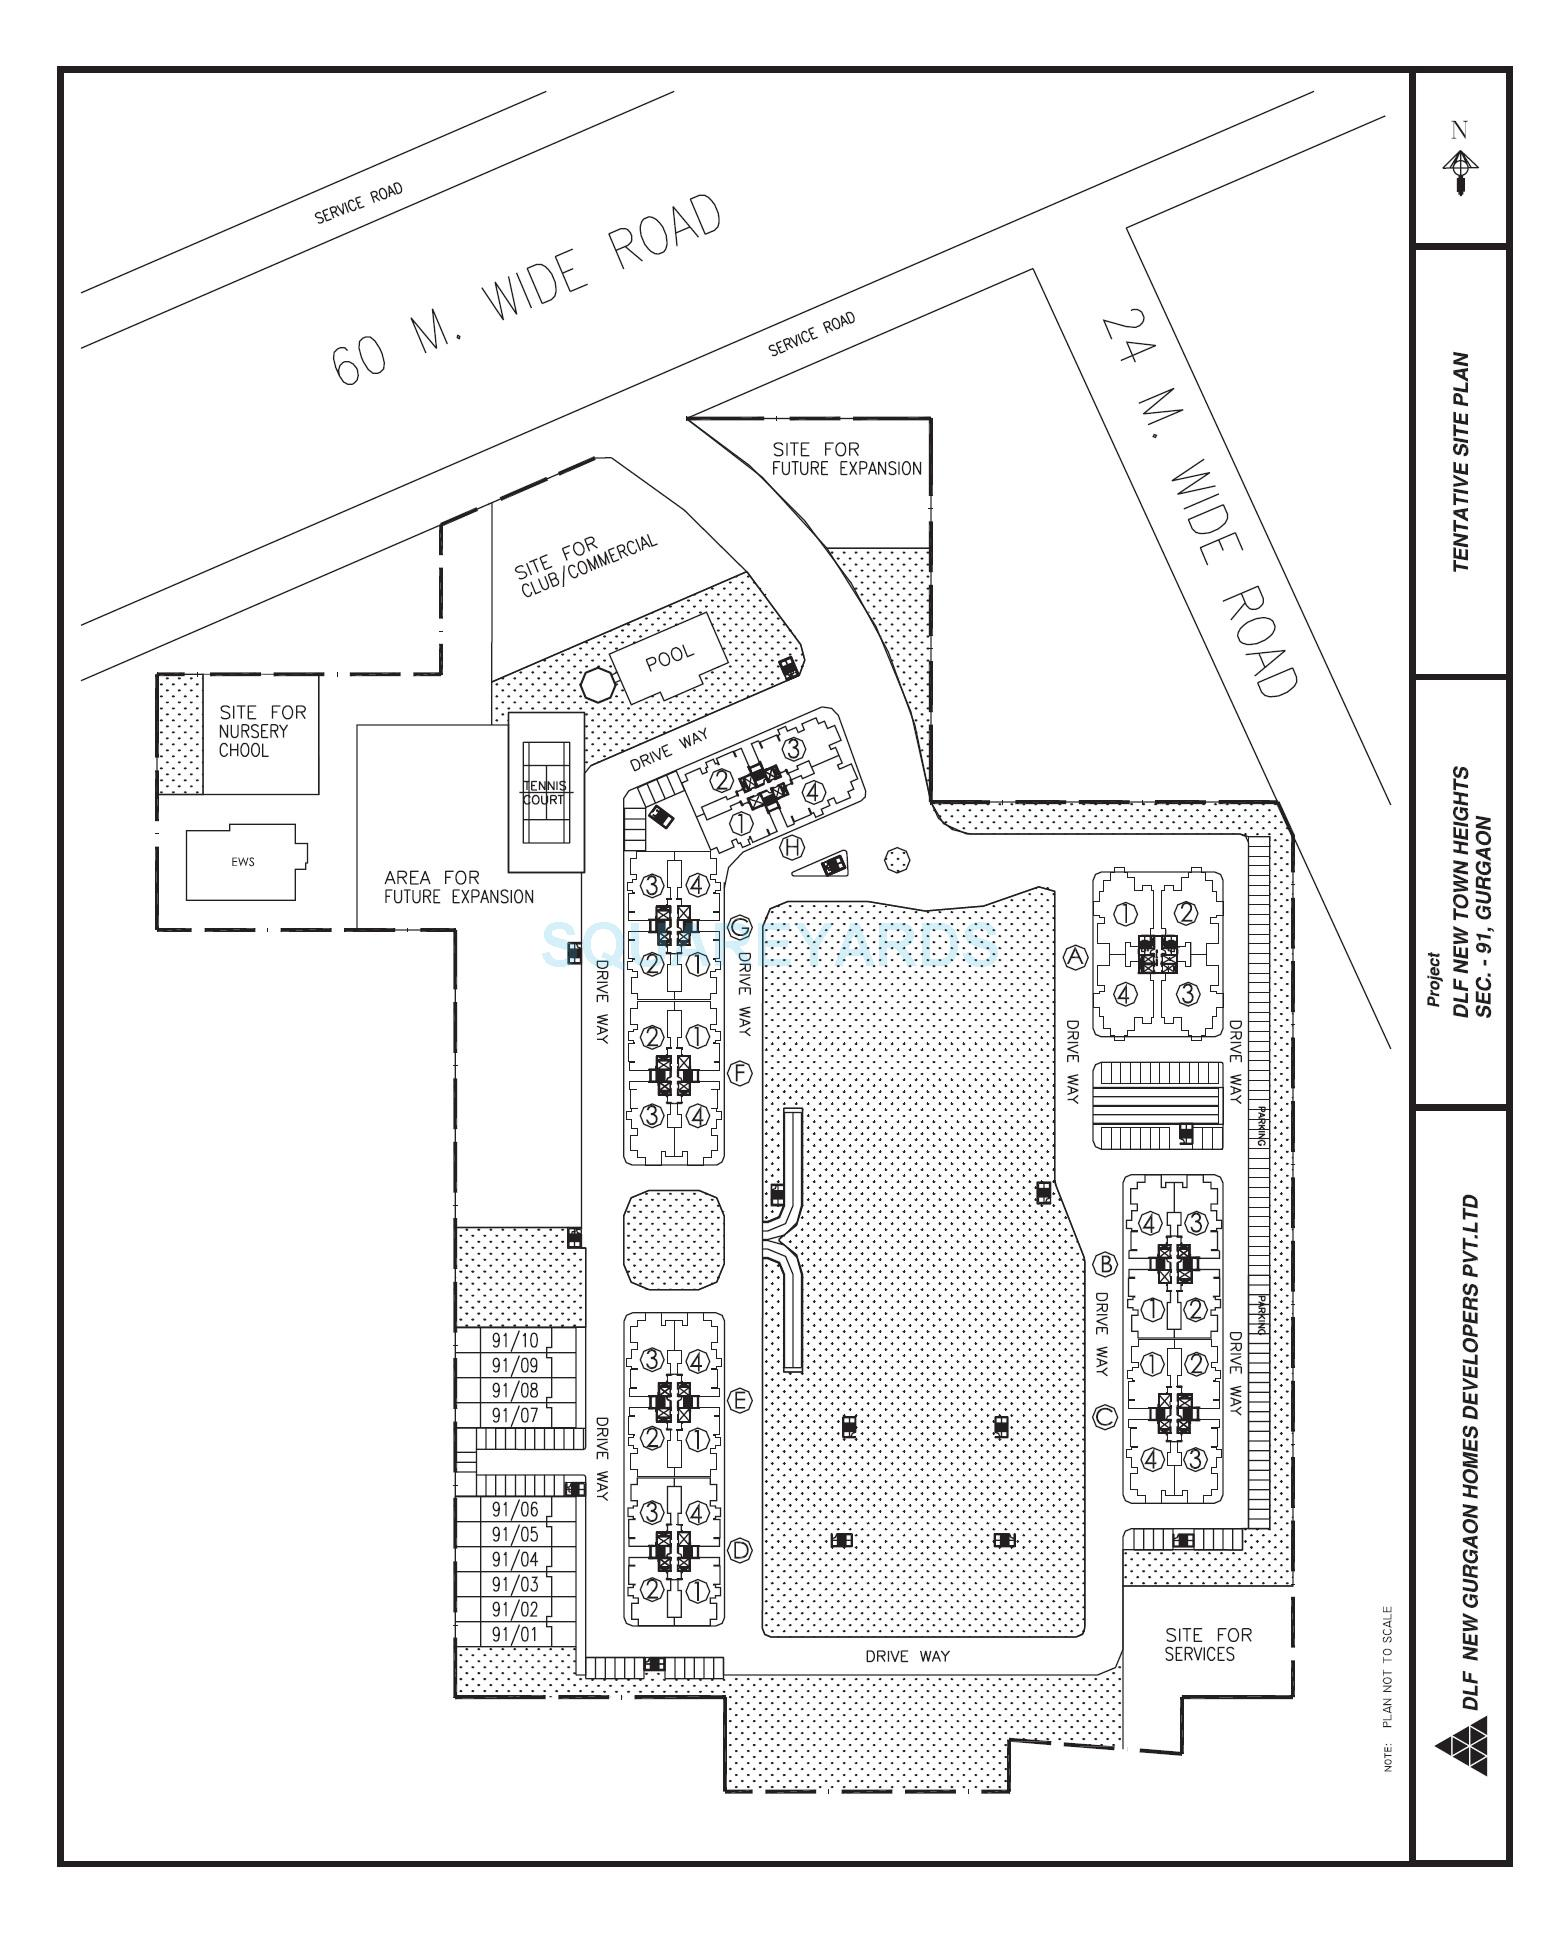 dlf new town heights iii master plan image1